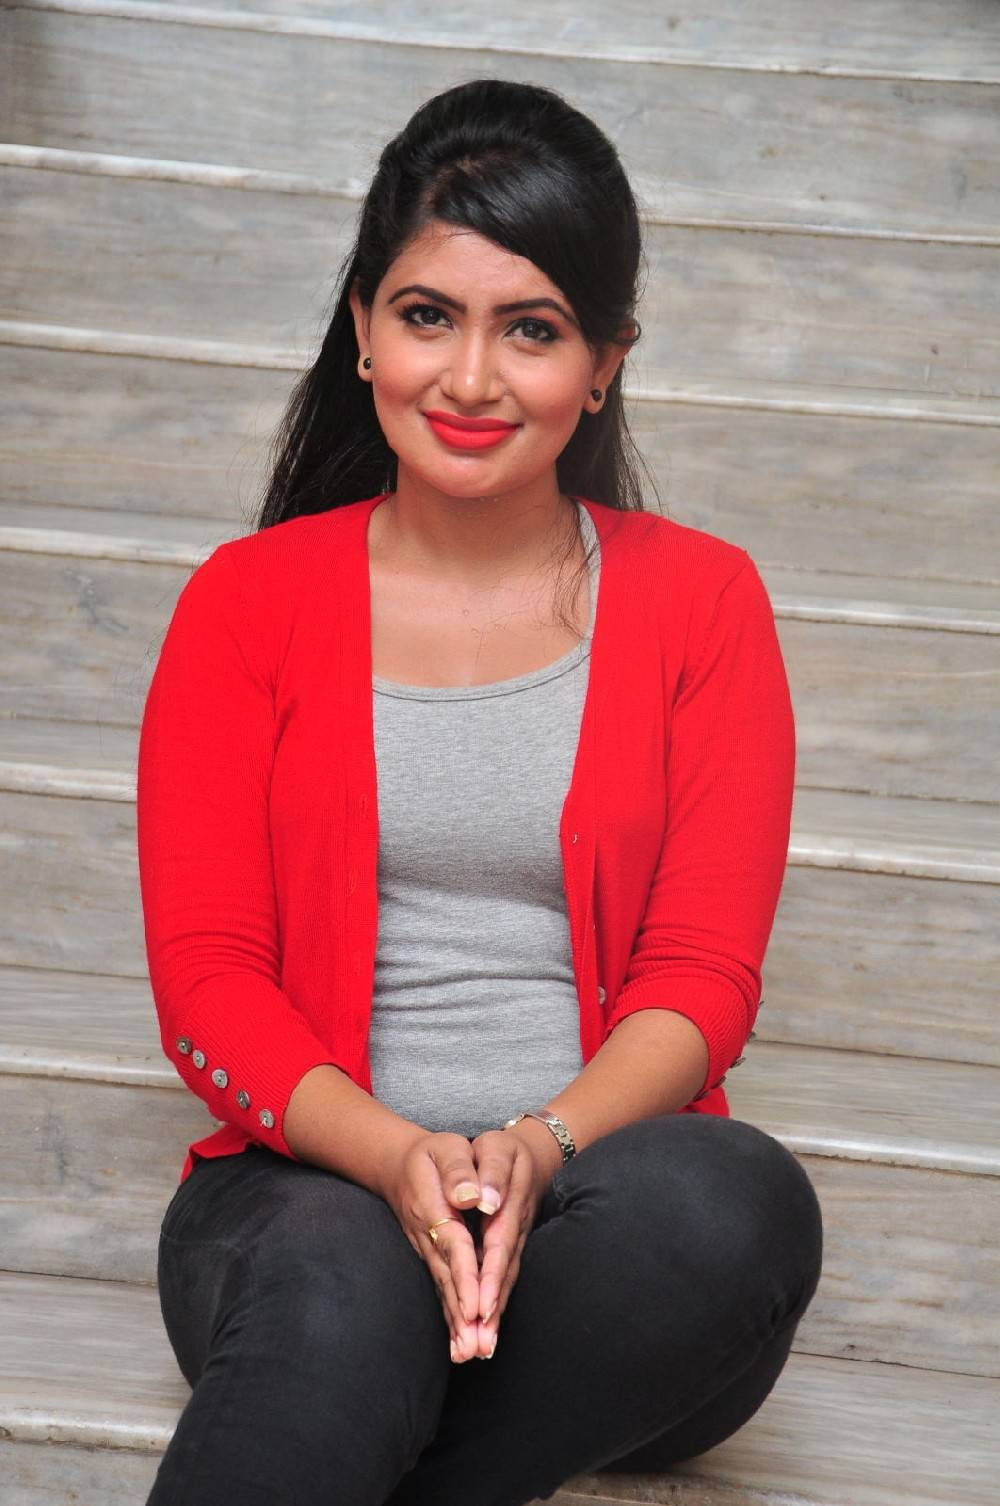 Angie James,actress Angie James,telugu actress Angie James,Angie James Latest Stills,Angie James Latest pics,Angie James Latest images,Angie James Latest photos,Angie James pics,Angie James images,Angie James photos,Angie James stills